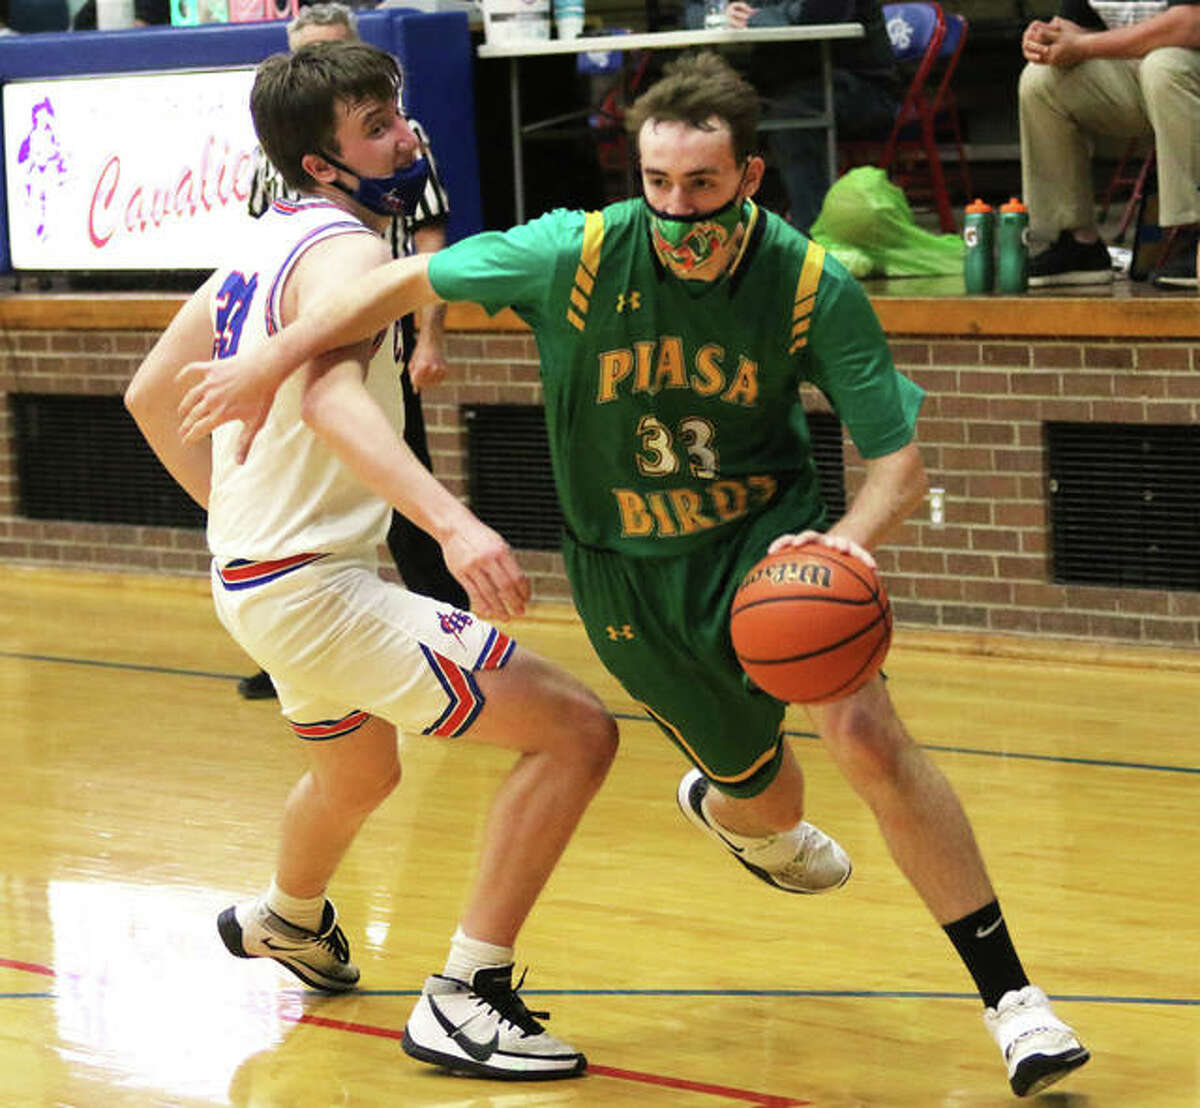 Southwestern's Addis Moore (right) drives past Carlinville's Aaron Wills in Wednesday's SCC game at Carlinville.